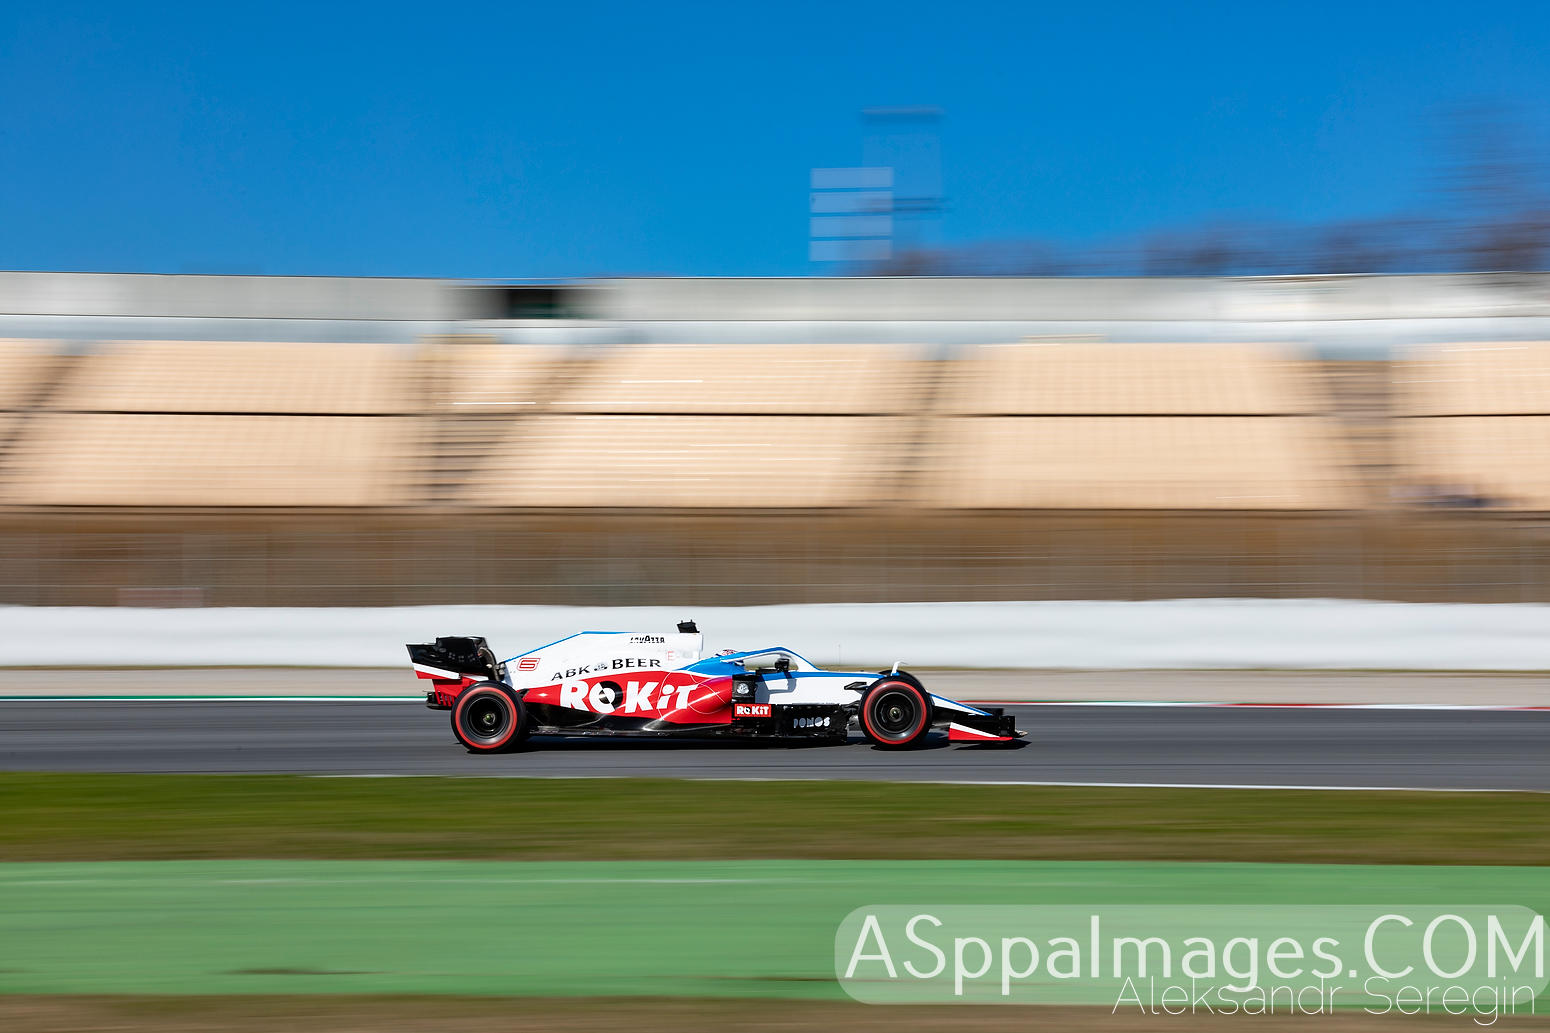 101.2020.FIA_.F1.Test_.Barcelona.Day_.4.WIL_.ASppaImges.COM_ by ASppaImages.COM | Aleksandr B. Seregin (c).